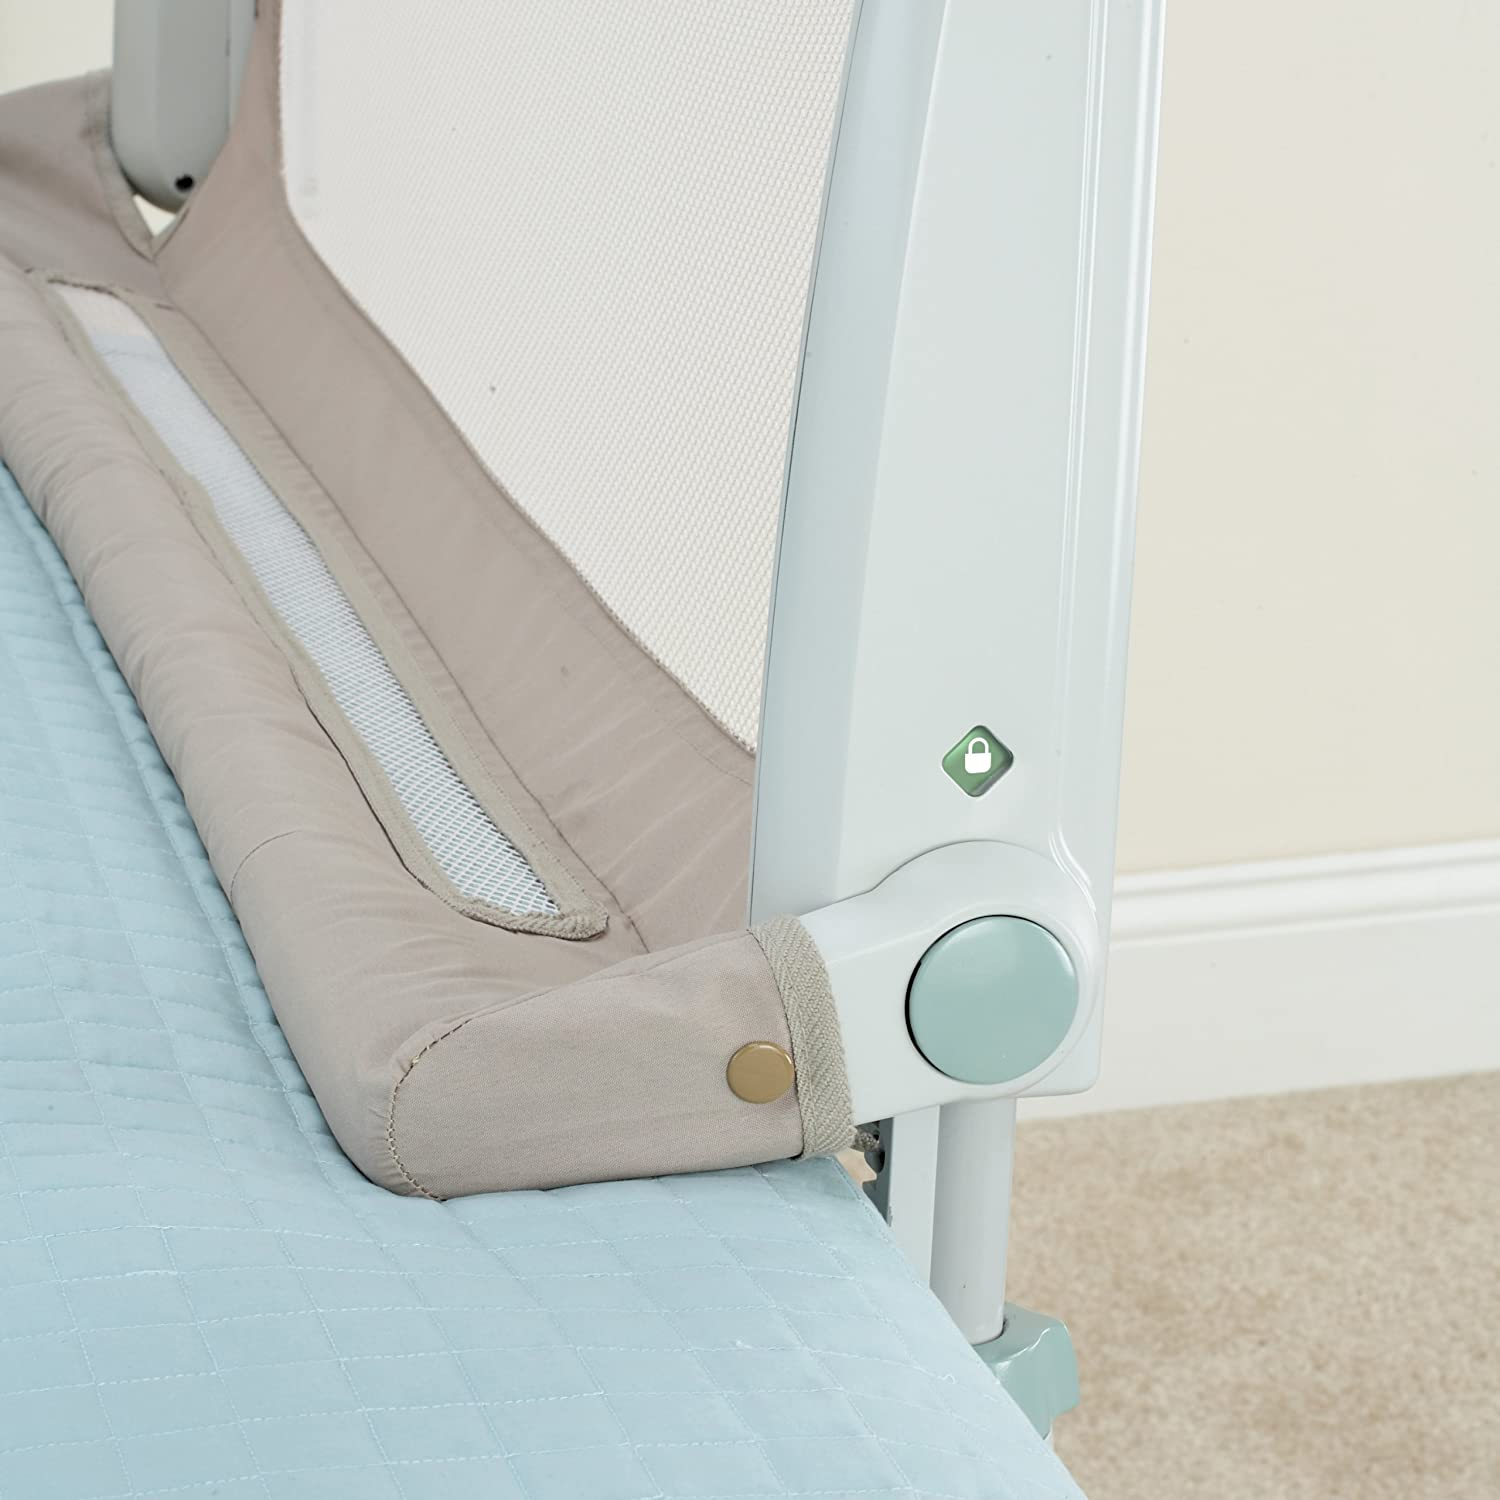 Amazon.com: Safety 1st Secure parte superior Bed Rail, Cojín ...